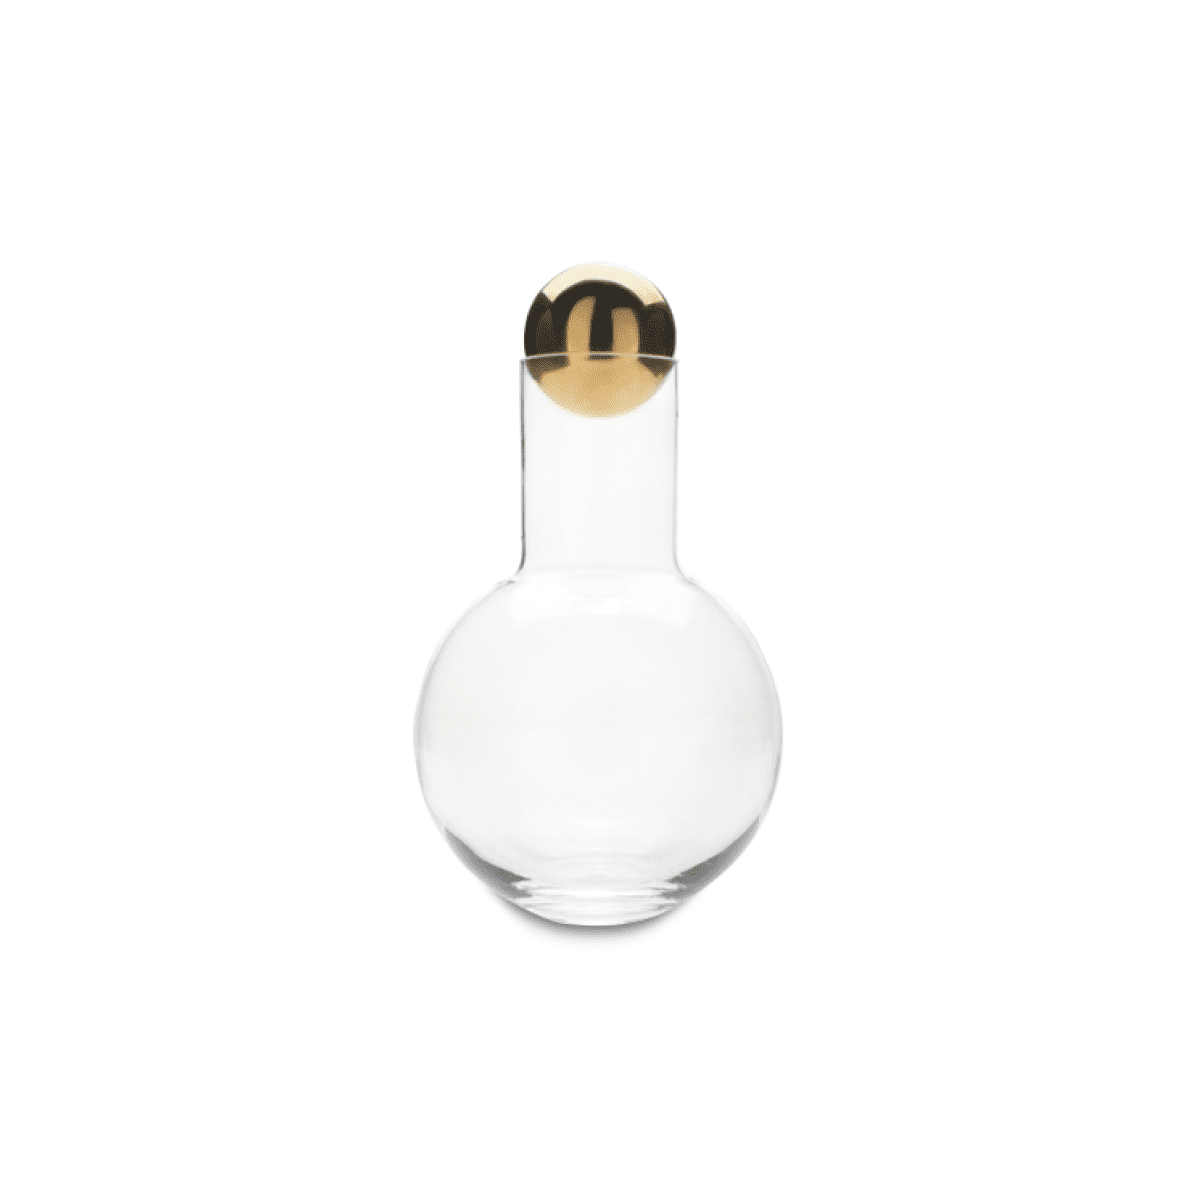 Anna Karlin Hand-Blown Glass Decanter